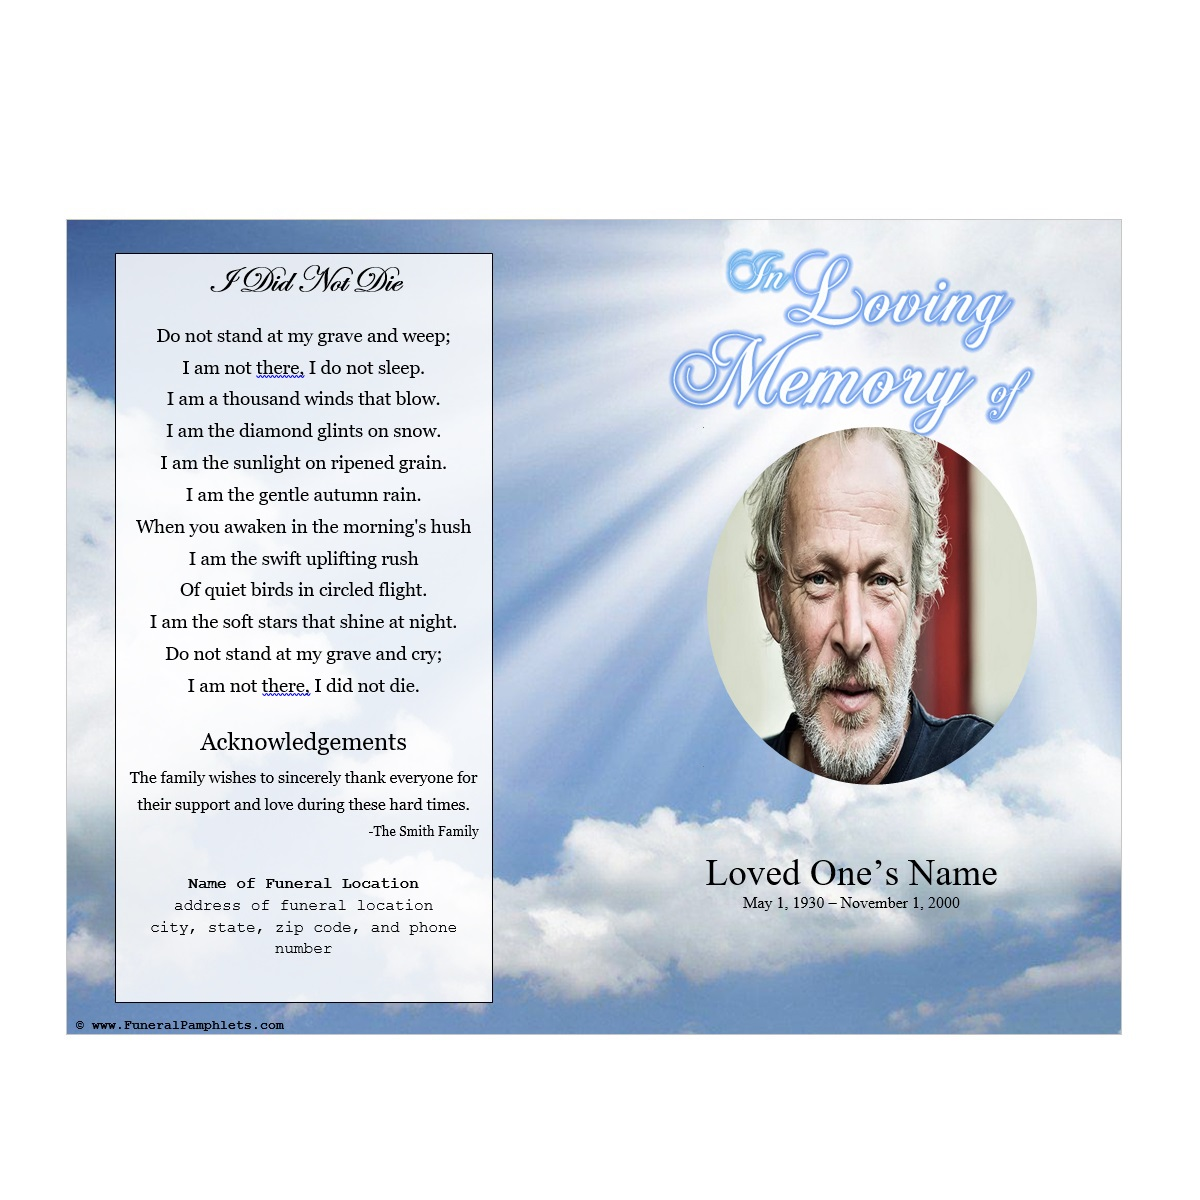 Sky Memorial Program Funeral Pamphlets